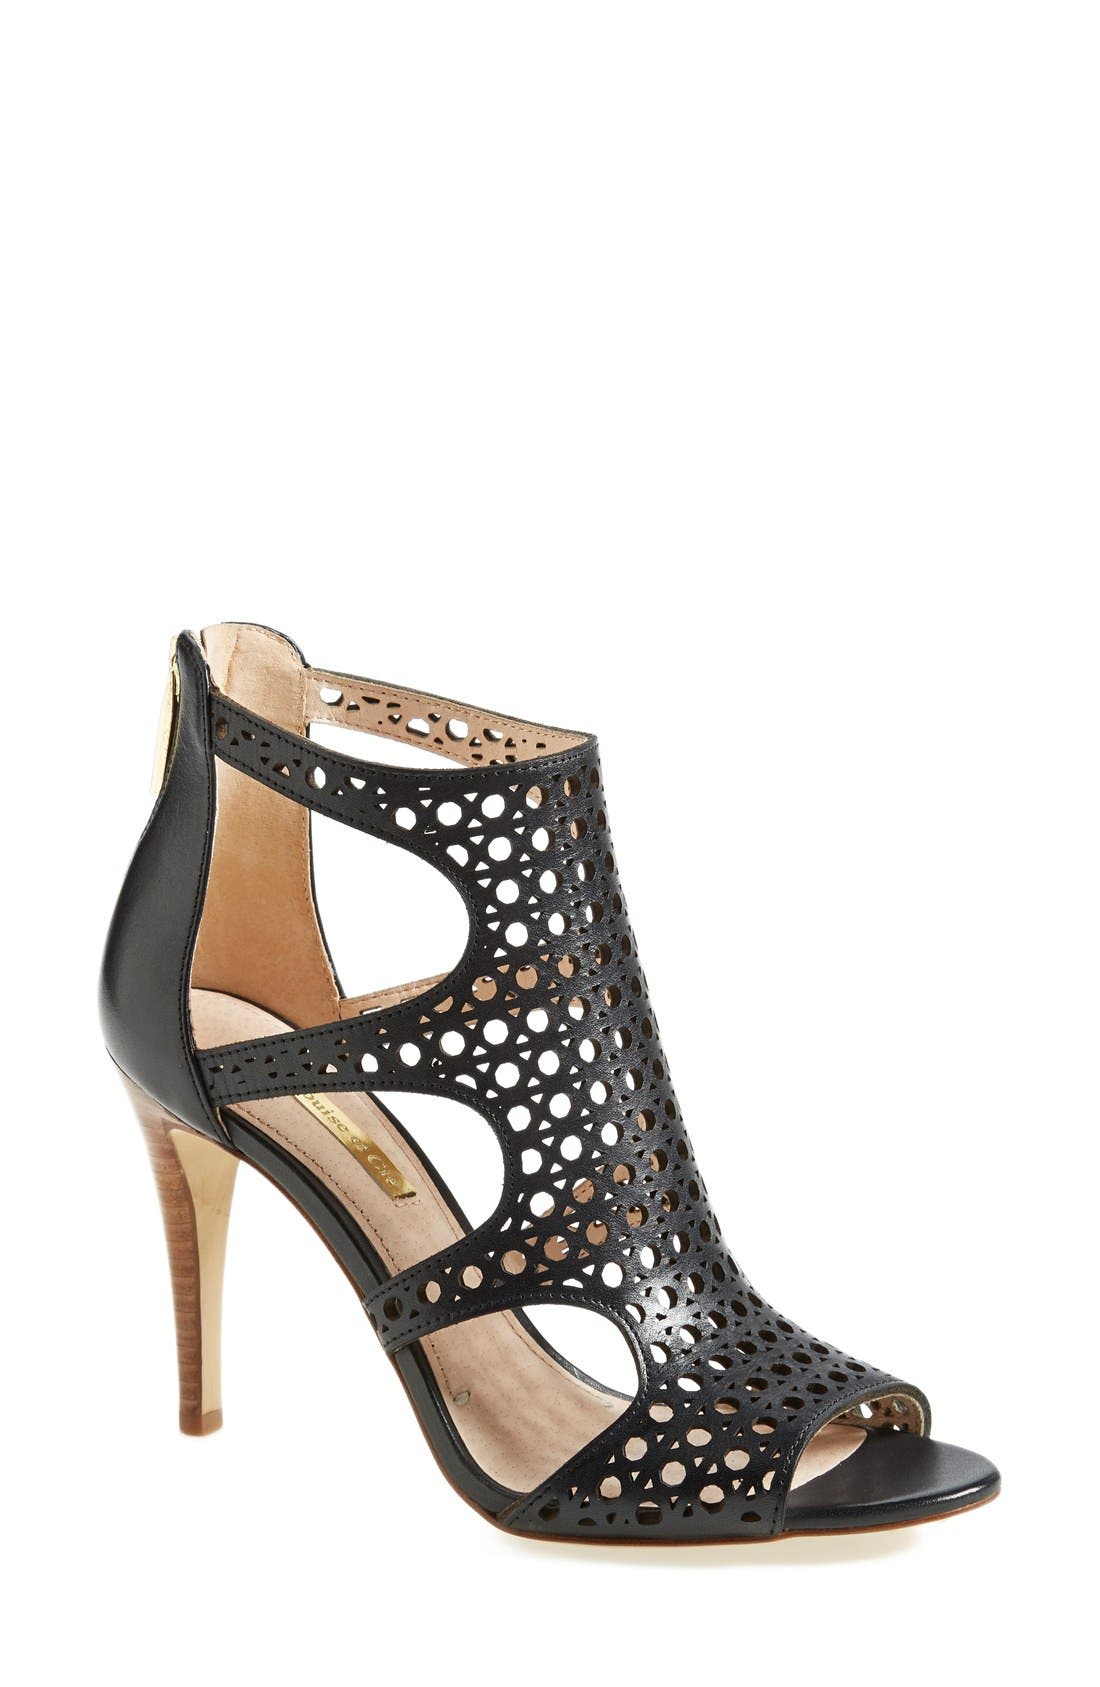 Main Image - Louise et Cie 'Winnie 2' Perforated Leather Pump (Women)